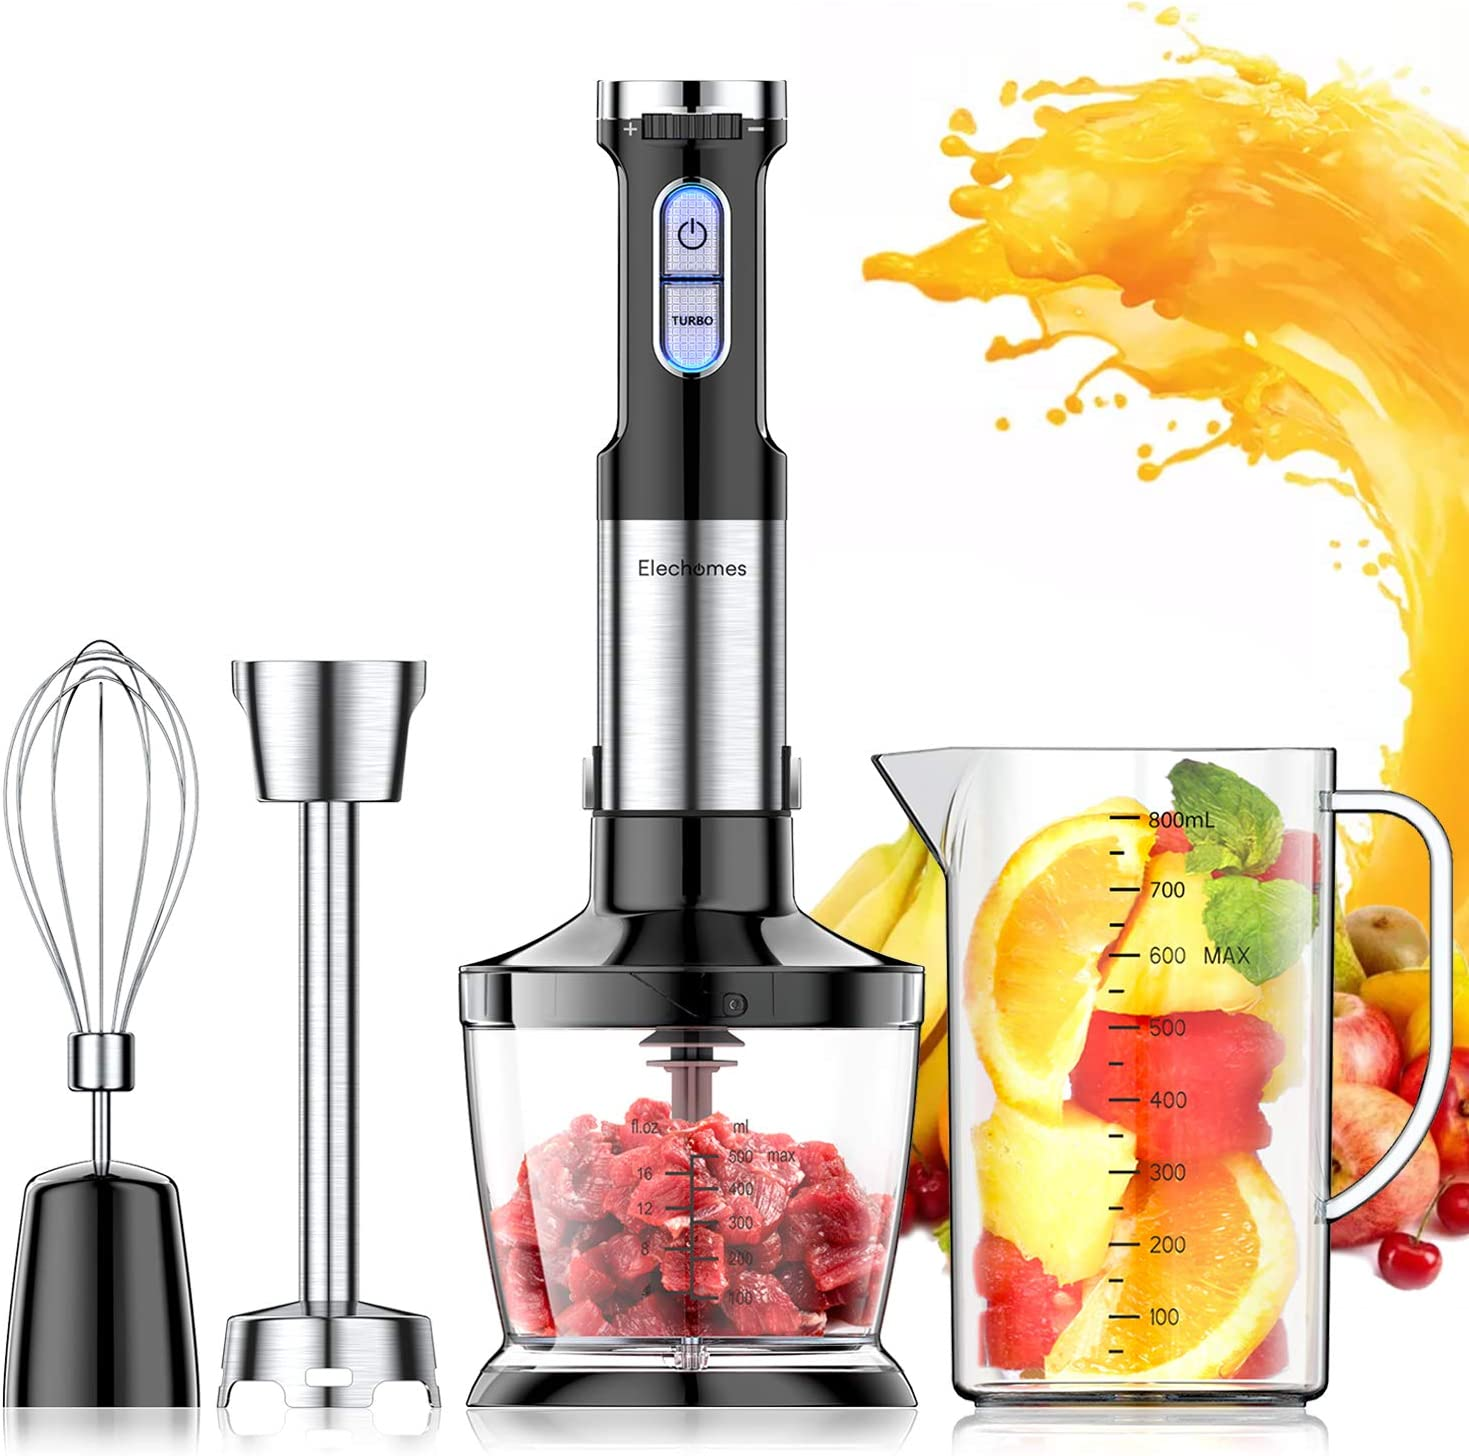 Elechomes 800 Watt Powerful Hand Immersion Blender with Large 800ml Mixing Beaker, 500ml Food Grinder, Egg Whisk, Ultra Strong Stick Blender, Safe Stainless Steel 4-Blade, Multi-Speed, 4-in-1 Setting, Advanced Splash Control Technology, BPA-Free